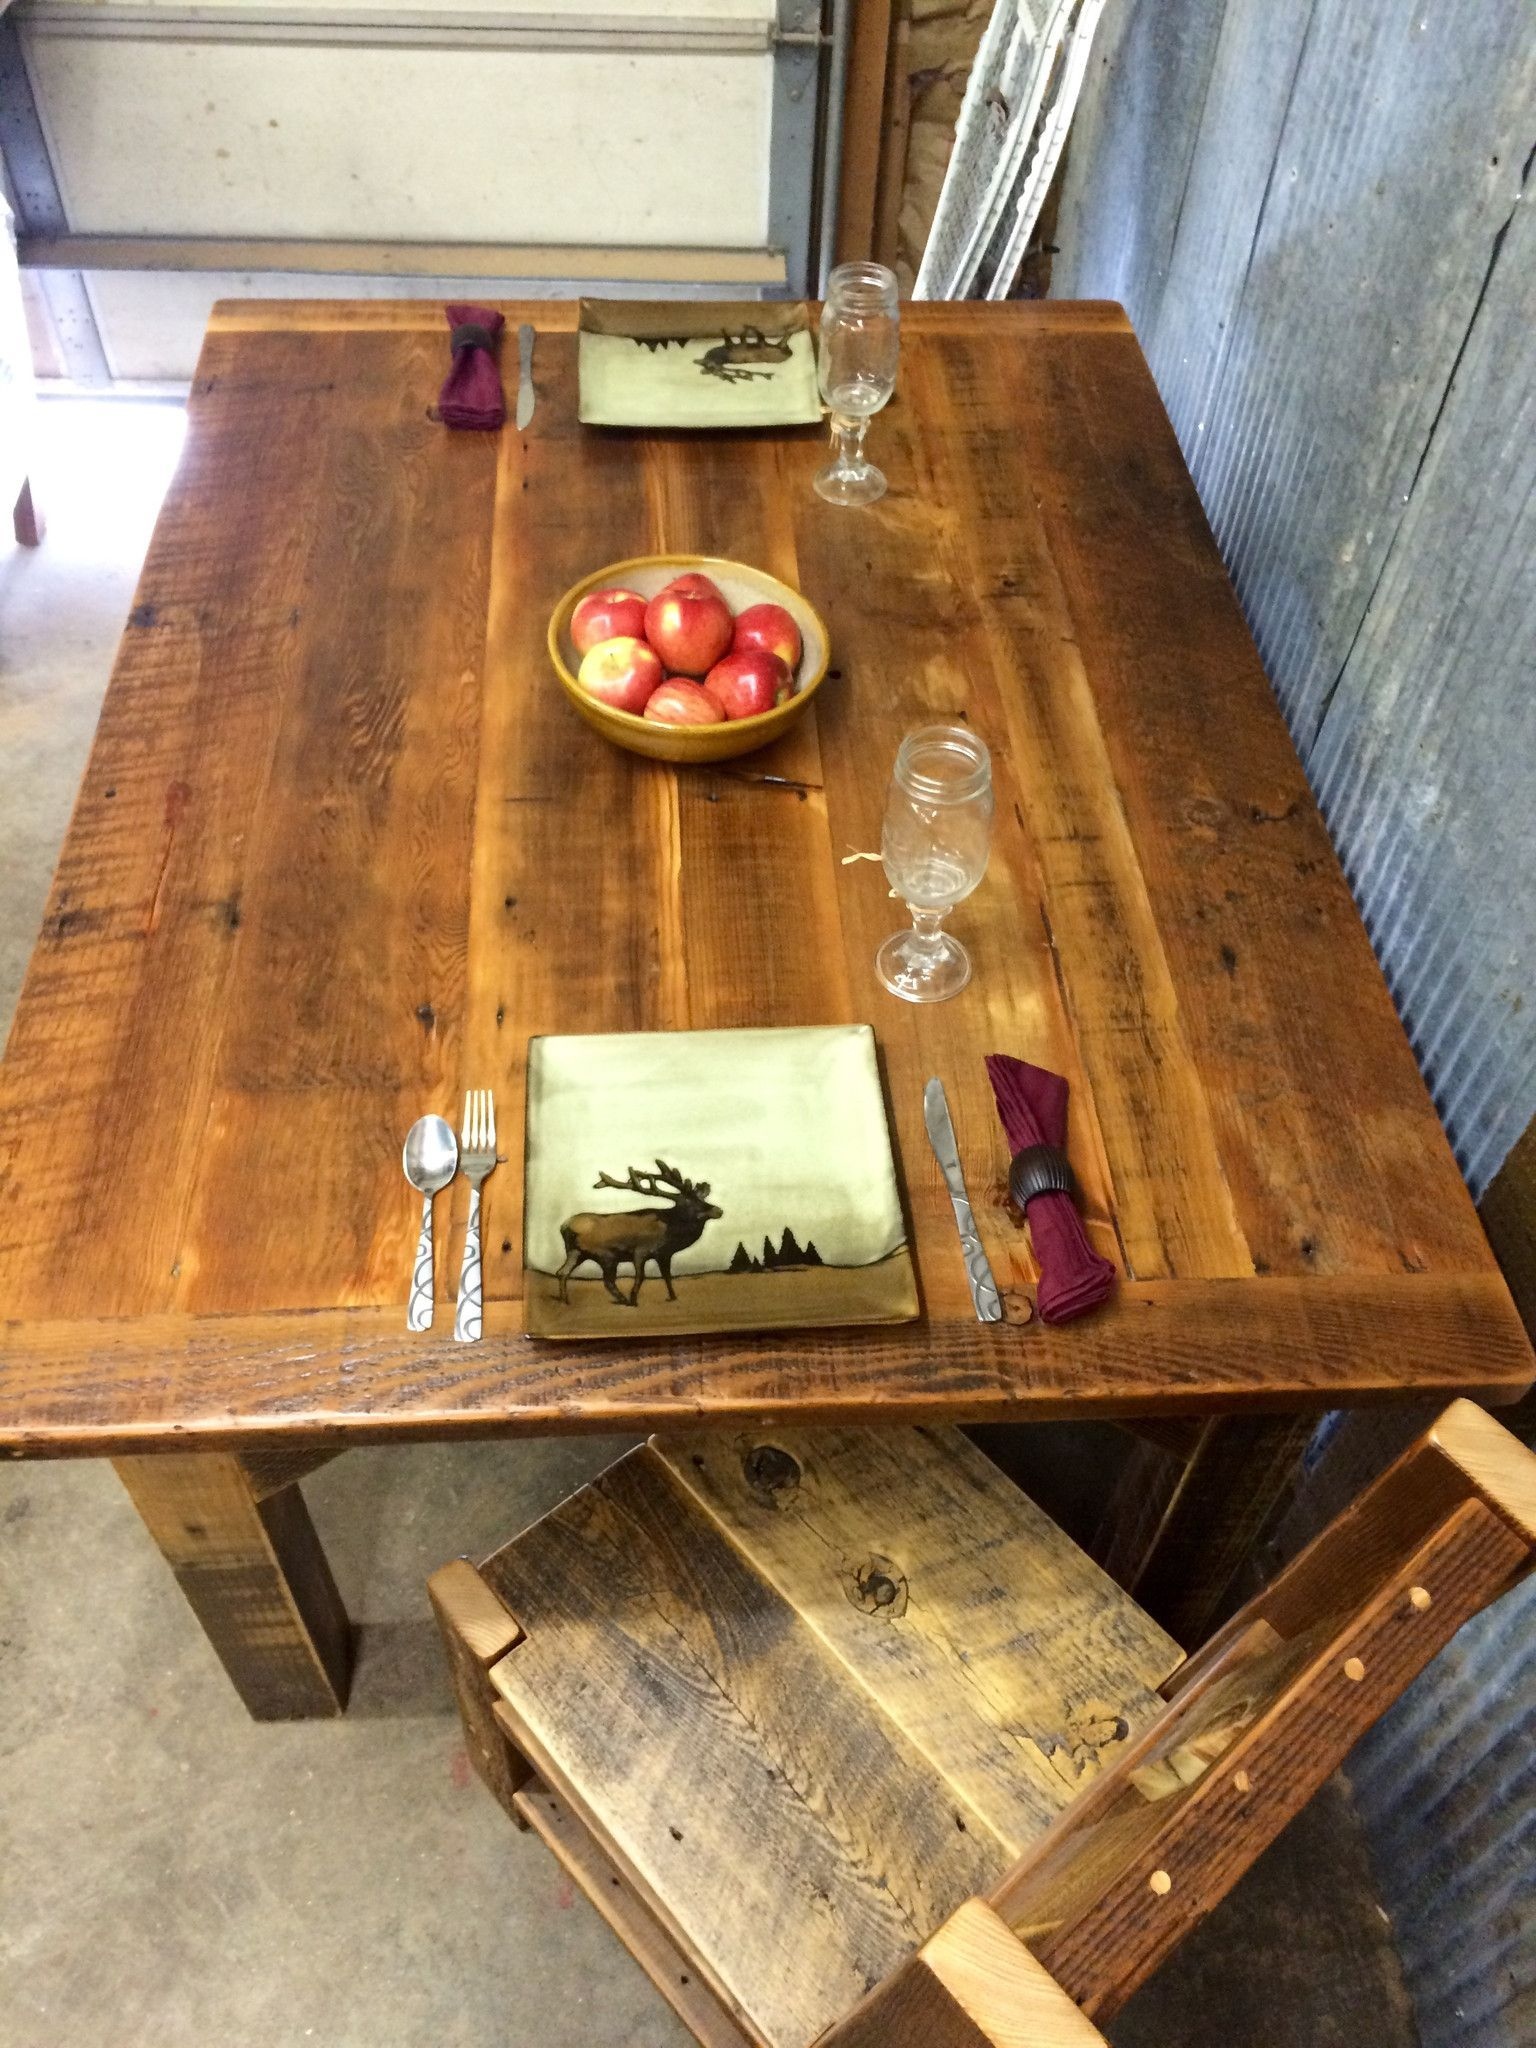 This reclaimed wood dining table, will take your dining room to the next level. There are pre-selected sizes which you can order from, or you can have the table made custom for the size that fits your